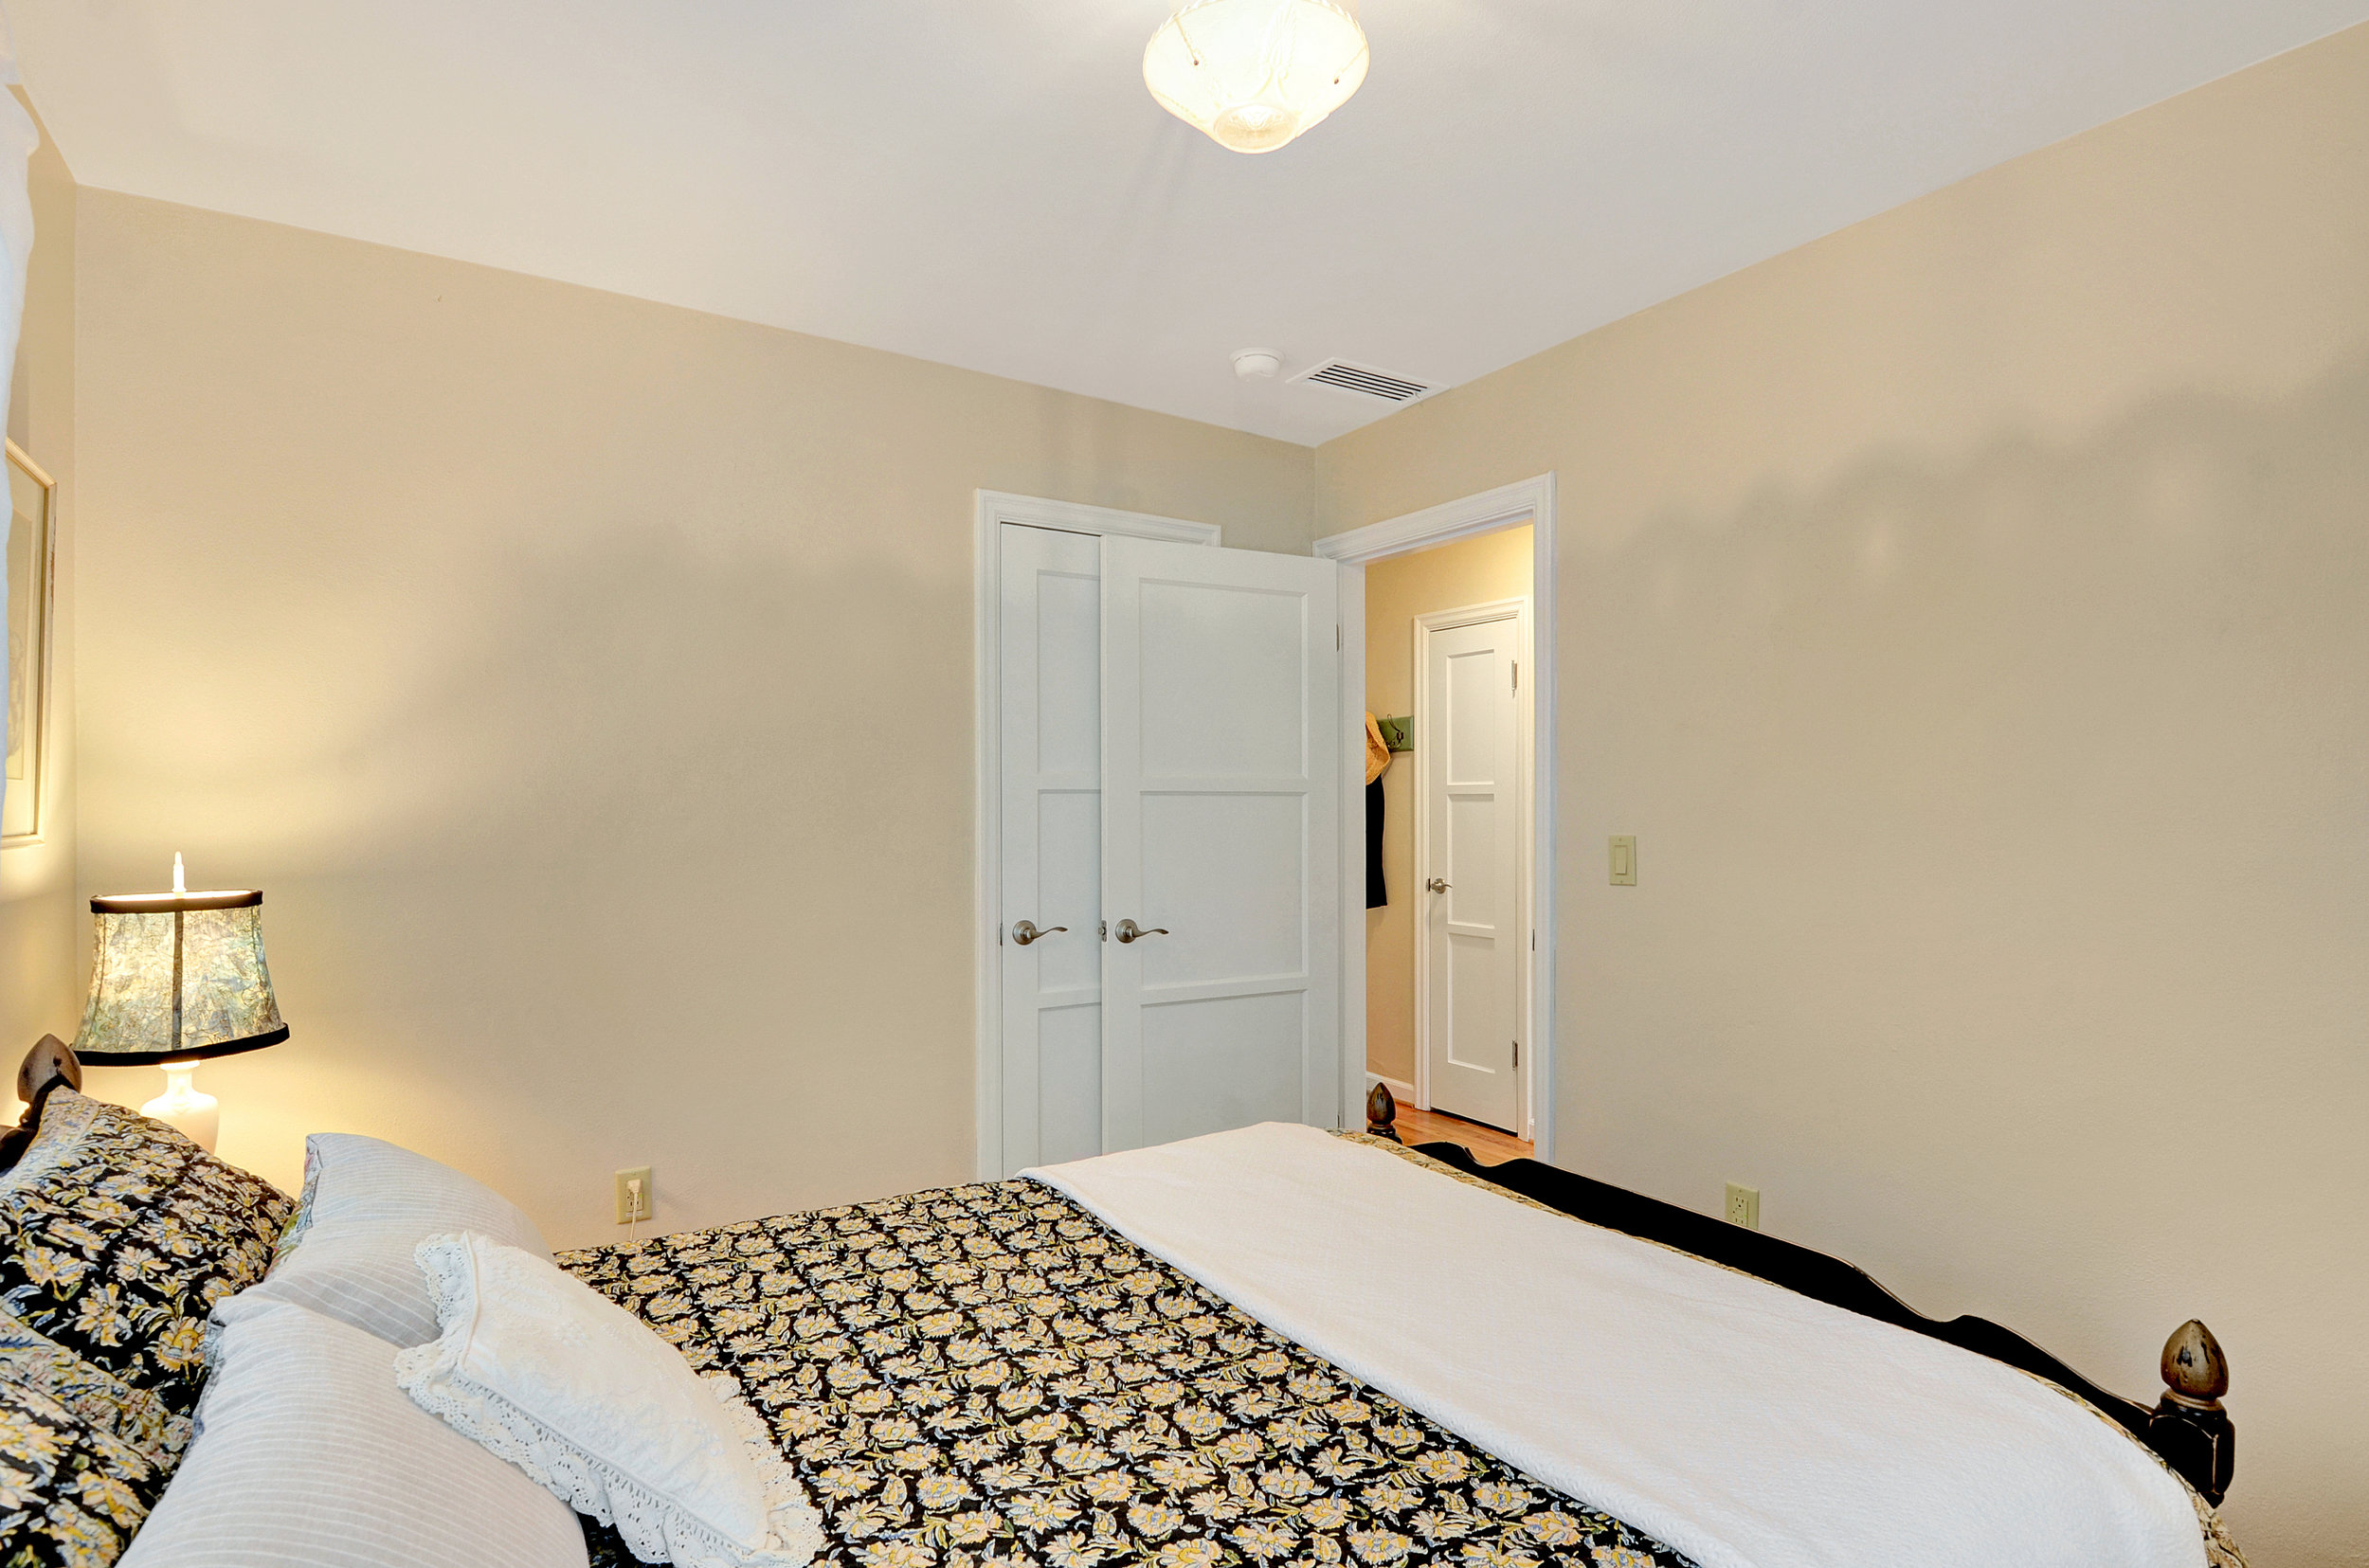 From the open door of this back bedroom, you catch a glimpse of the hallway with its additional closet, and room for a coat rack.